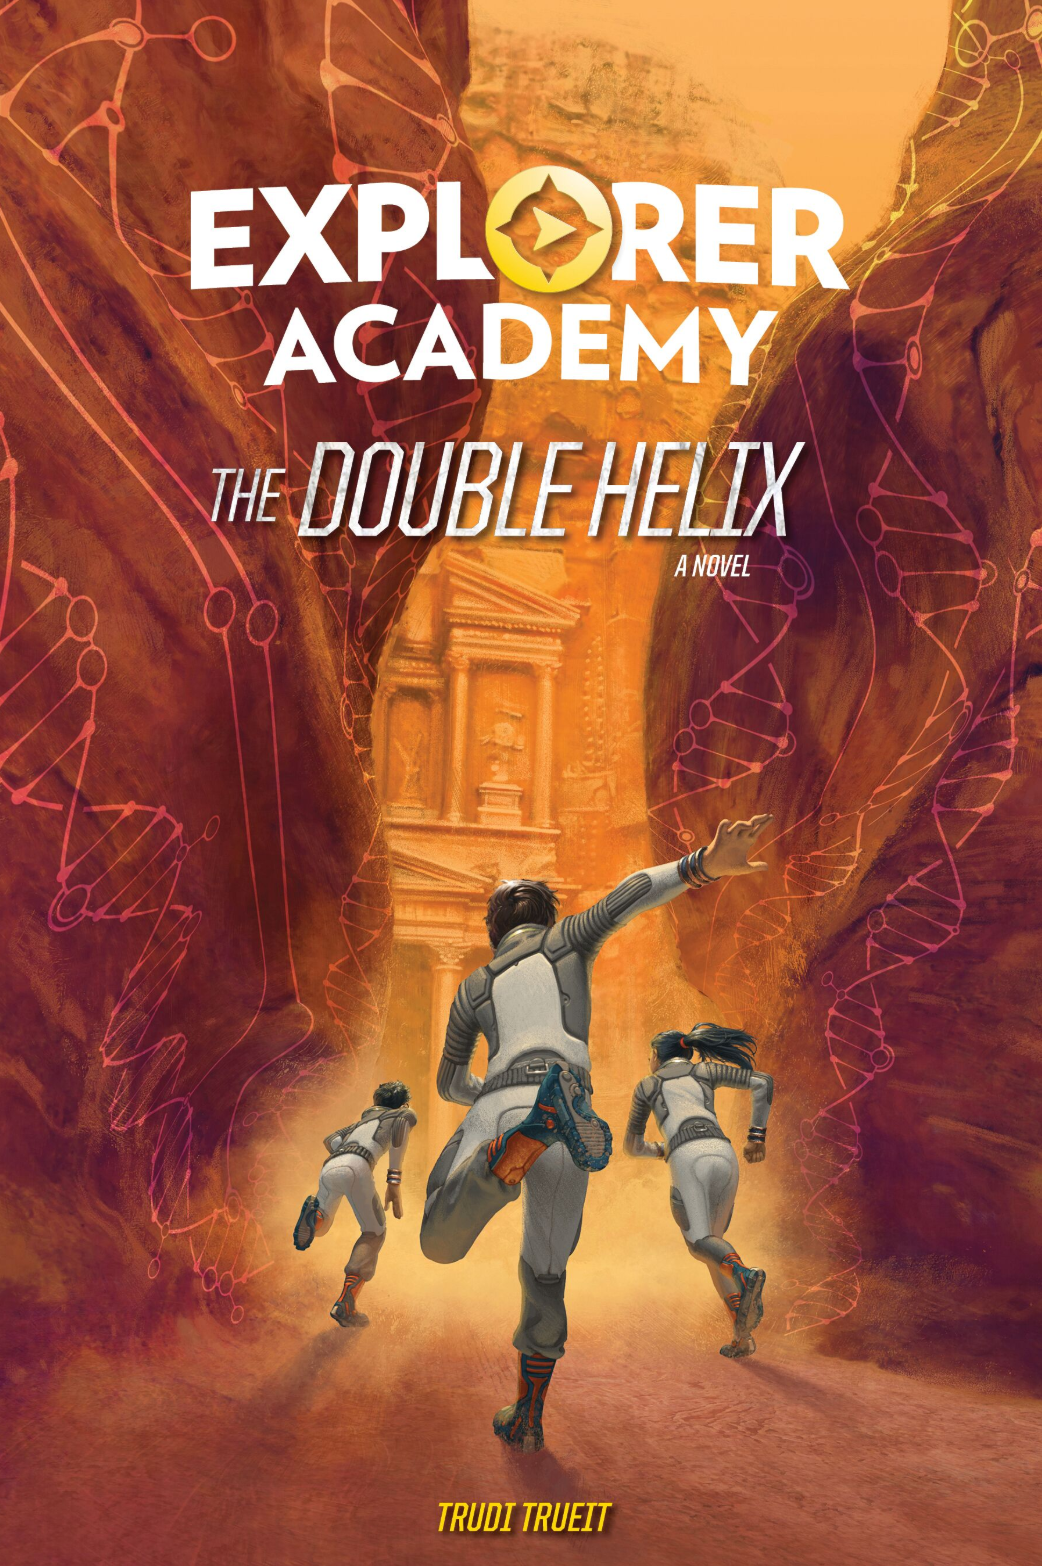 Continue the Thrilling Global Journey With 'Explorer Academy: The Double Helix'